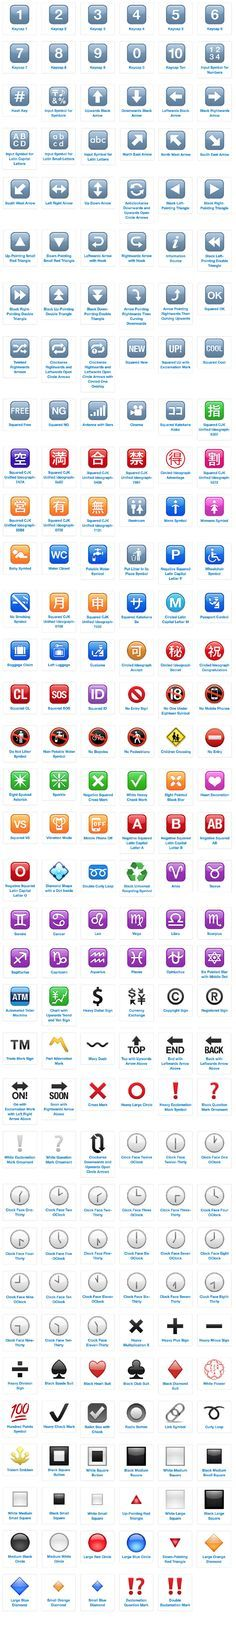 emoji icon list symbols with meanings and definitions